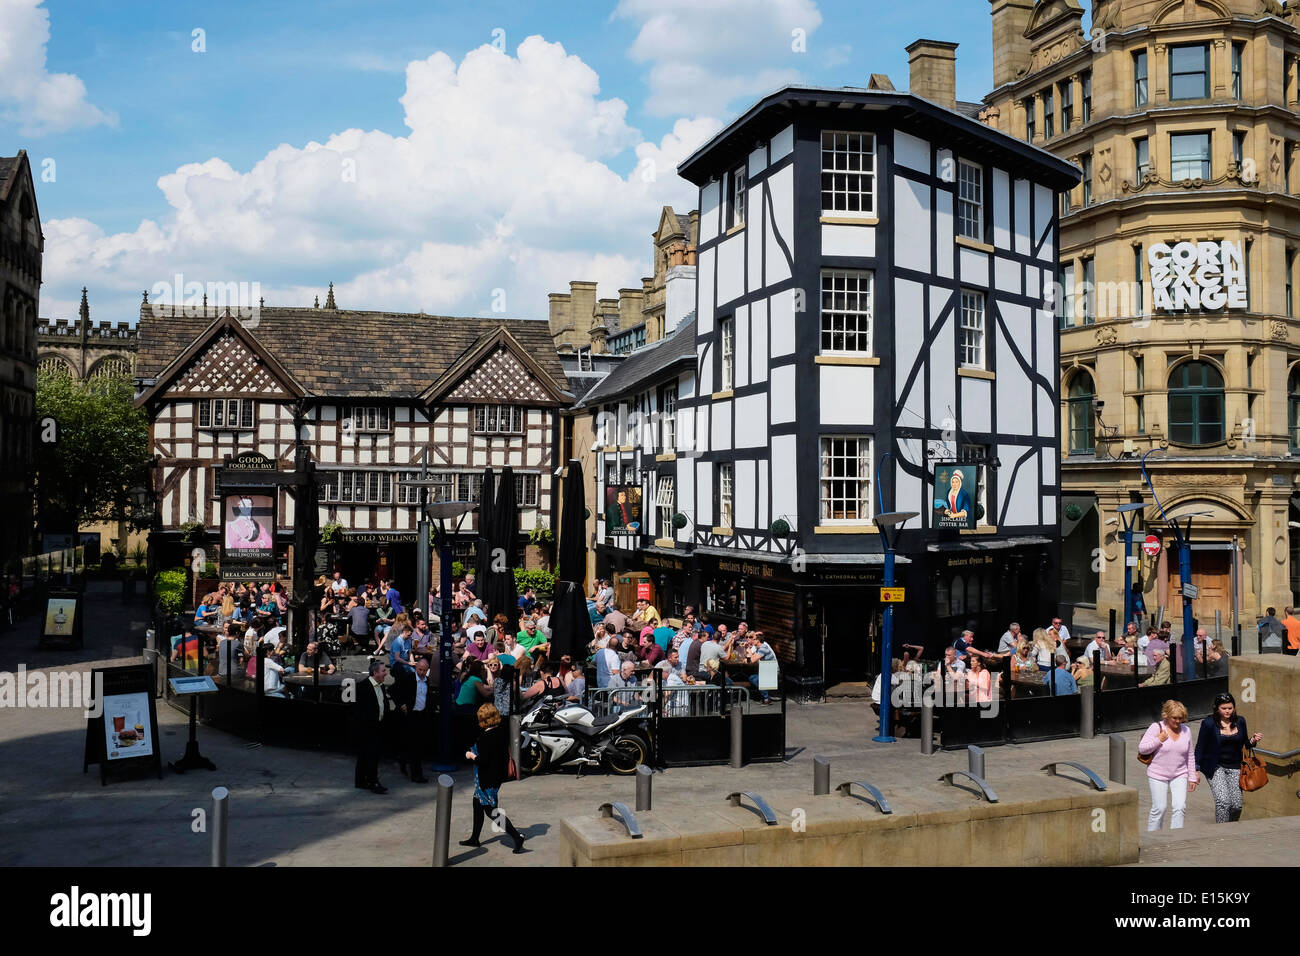 The Old Wellington Inn and Sinclairs Oyster Bar in Manchester city centre UK Stock Photo